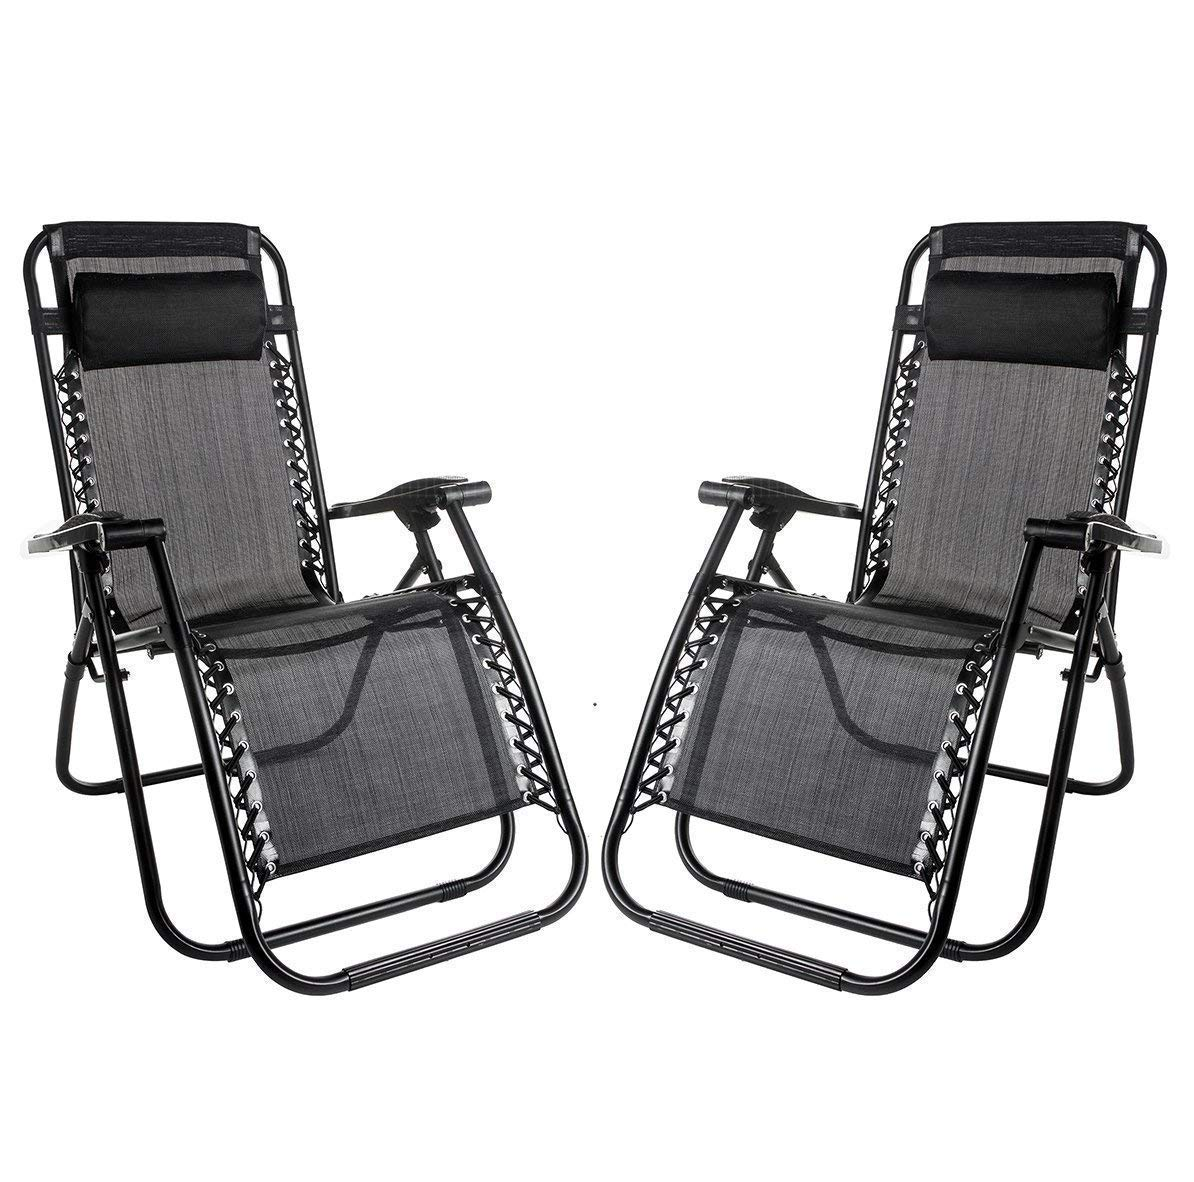 KNMY Heavy Duty Zero Gravity Chairs, Set of 7 Garden Chairs Outdoor Patio  Sunloungers Folding Reclining Chairs Lounger Deck Chairs for Home, Garden,